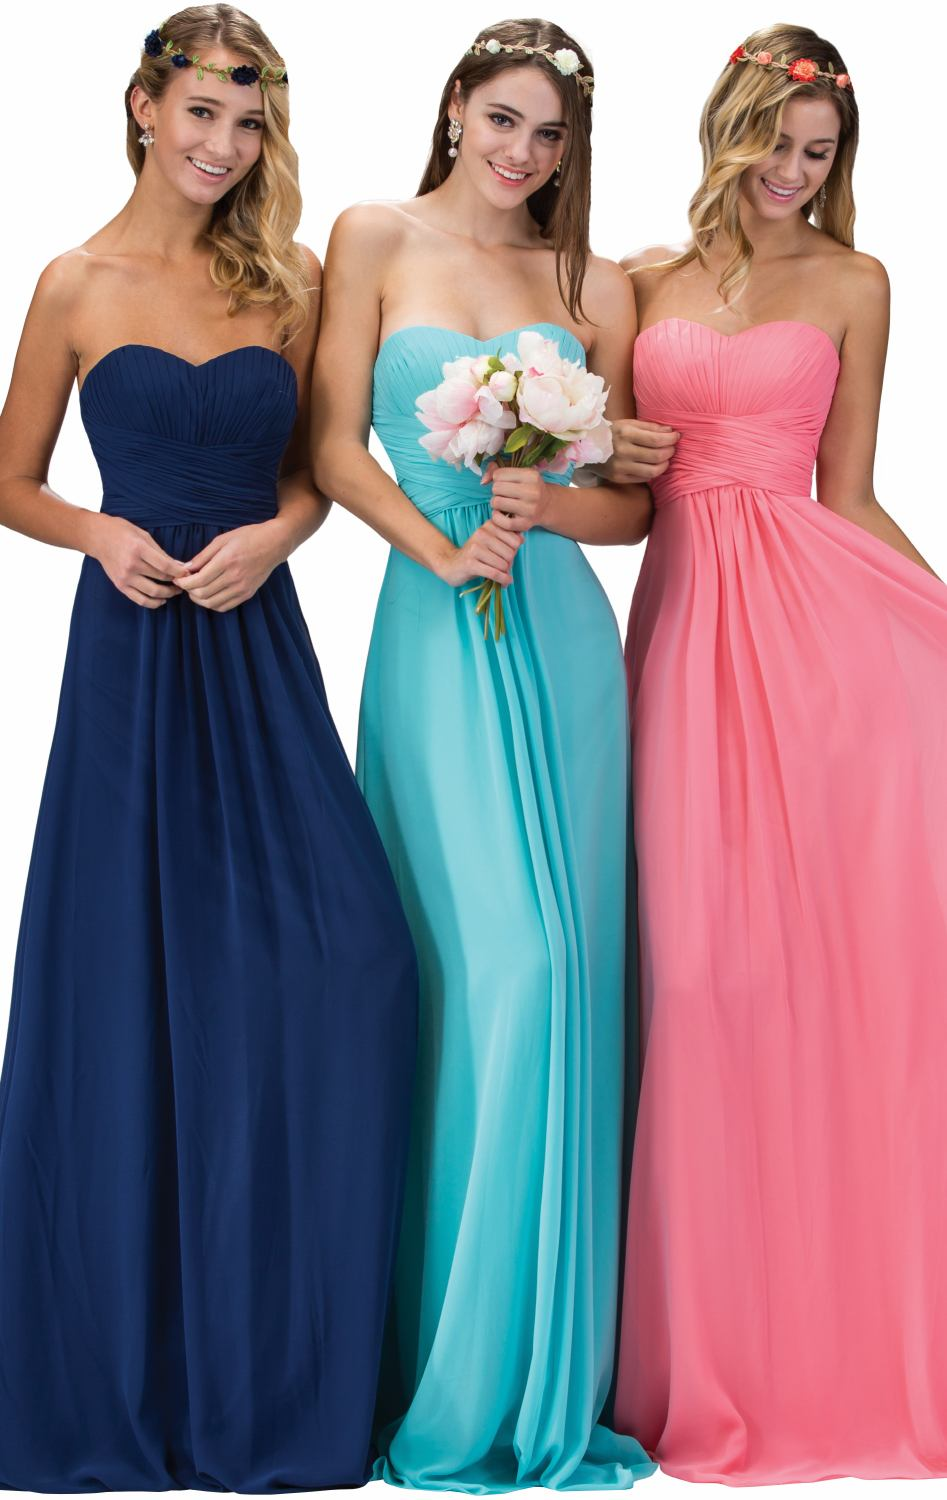 2017 pleat bridesmaid dresses real photos built bra blue pink navy 2017 pleat bridesmaid dresses real photos built bra blue pink navy pink champagne stock cheap wedding party dress d1511125 in bridesmaid dresses from ombrellifo Images